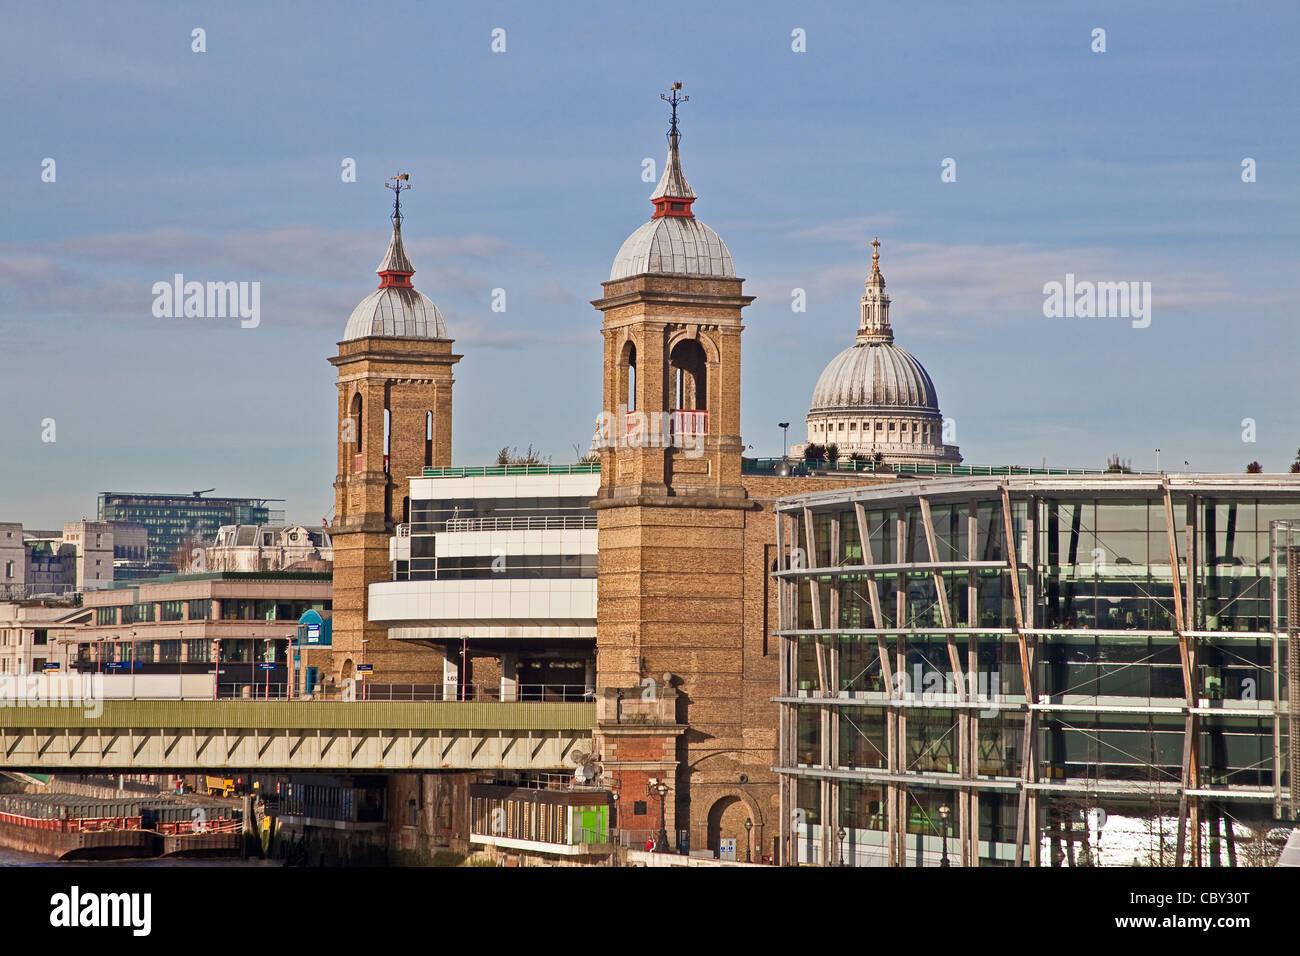 The approach to Cannon Street station seen from London Bridge December 2011 - Stock Image